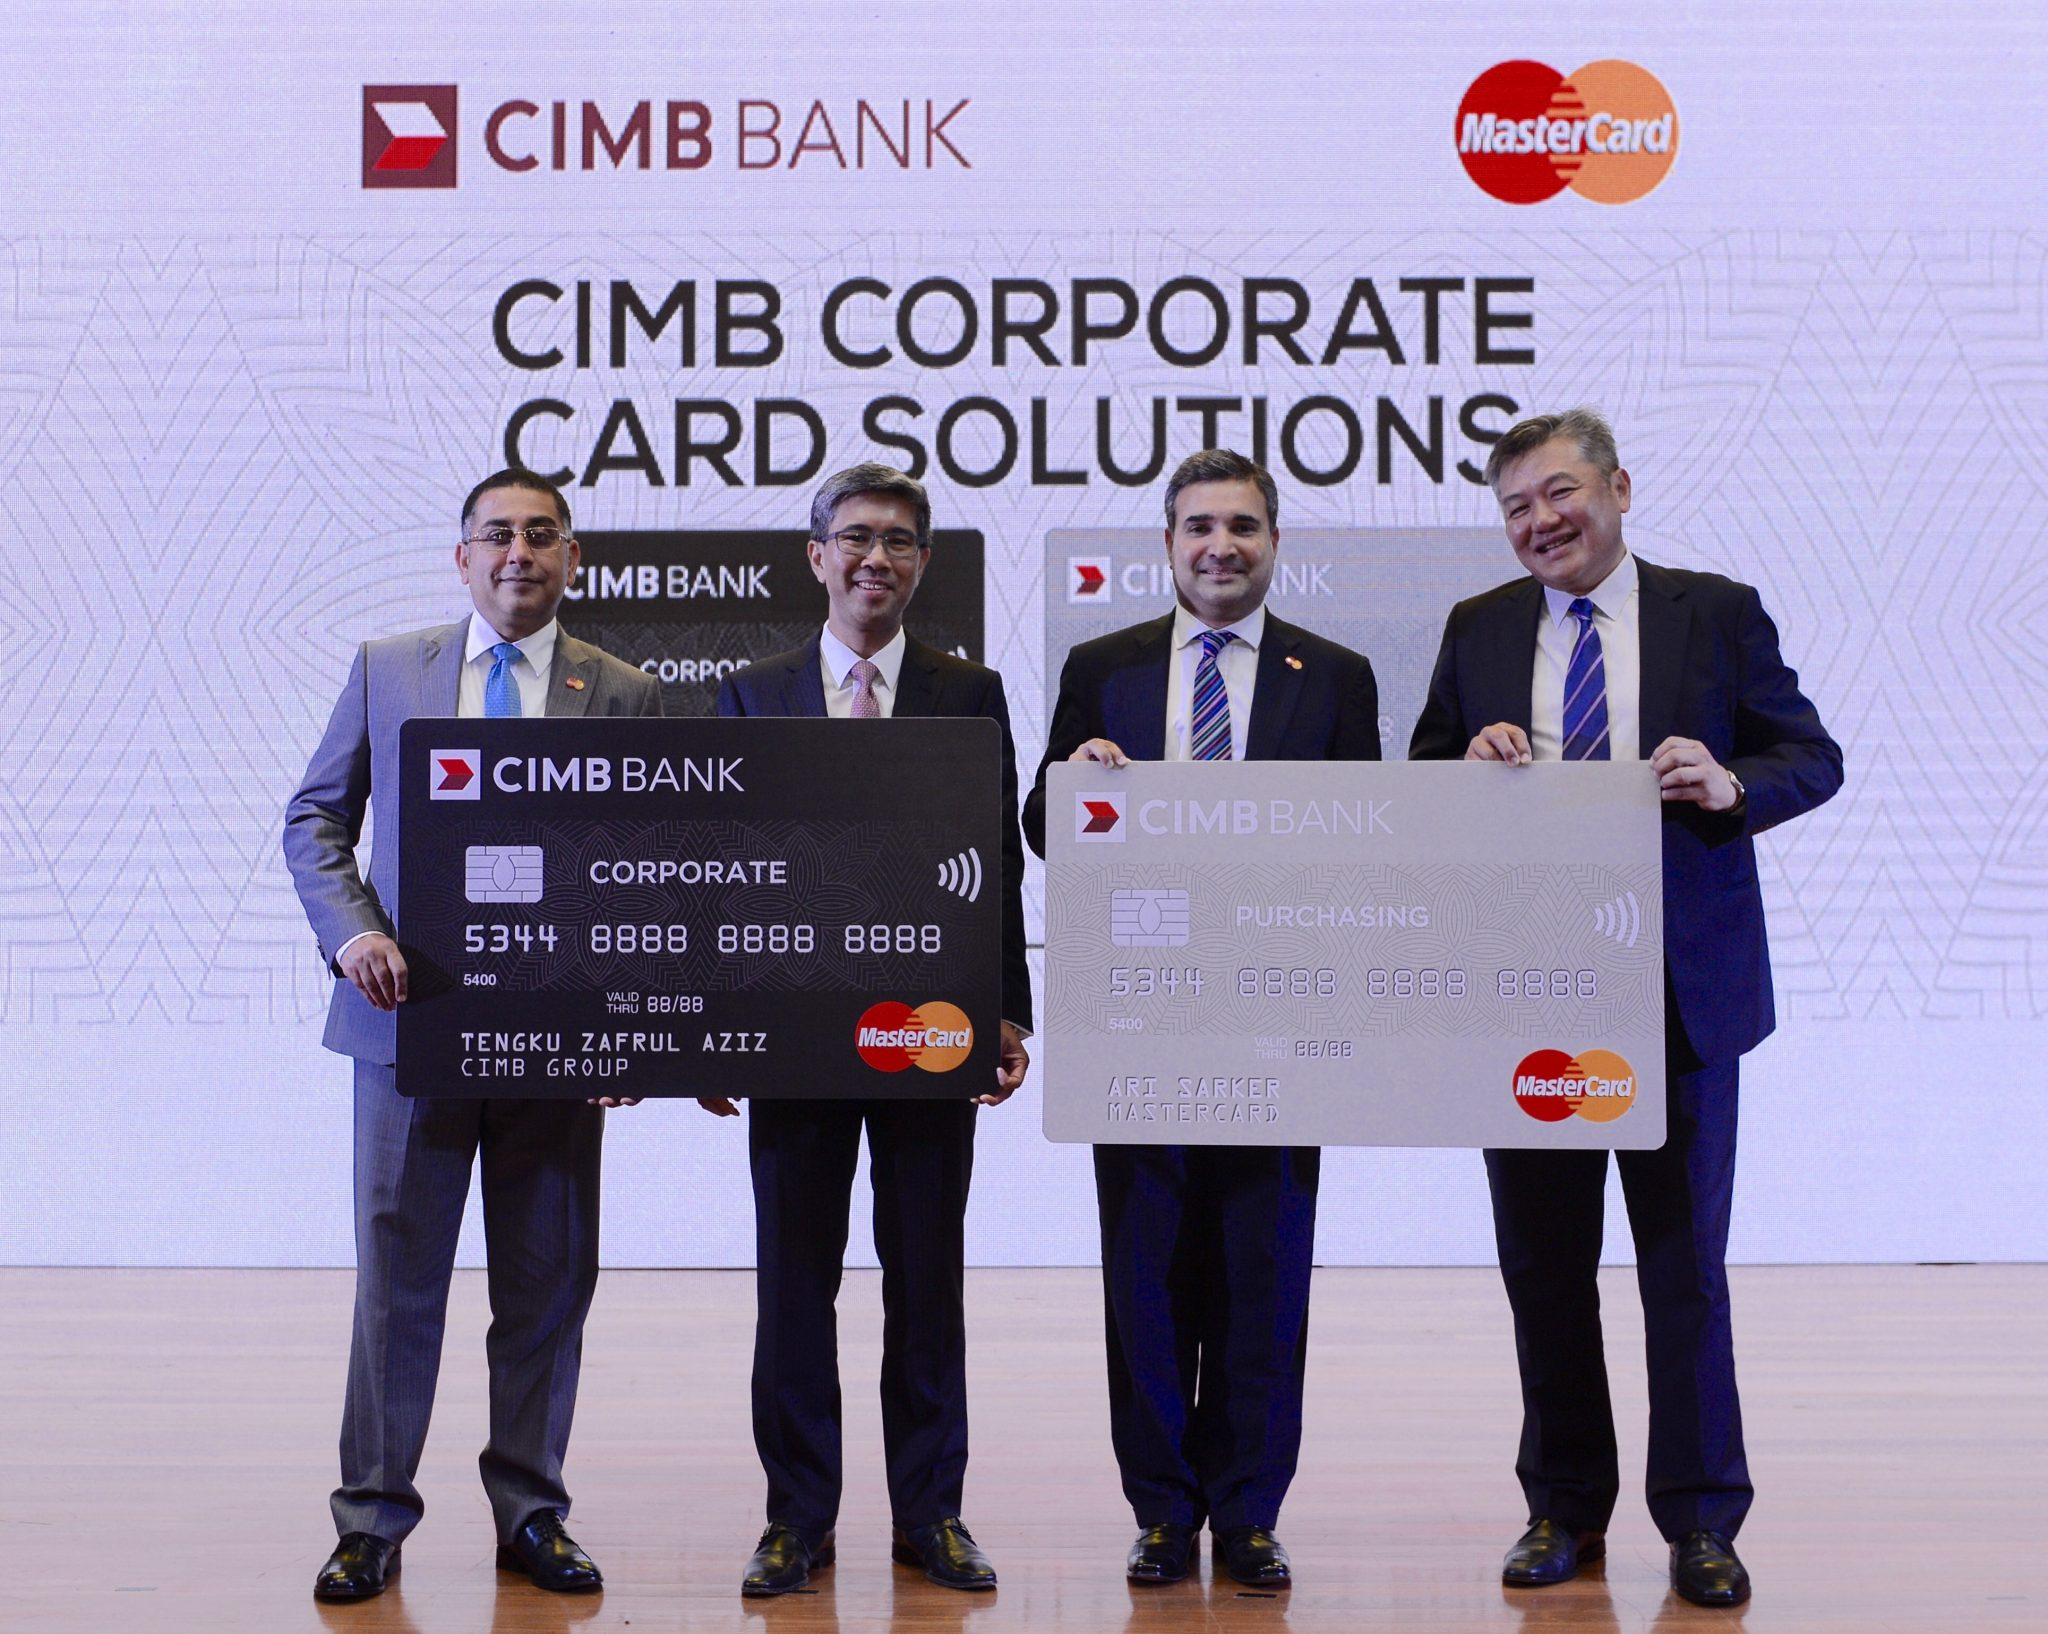 Launch of CIMB's Corporate Card Solutions (L-R): Safdar Khan, group country manager, Indonesia, Malaysia & Brunei and group head, Islamic payments, South East Asia, MasterCard; Tengku Dato' Sri Zafrul Aziz, group chief executive, CIMB Group; Ari Sarker, co-president, Asia/Pacific, MasterCard and Thomas Tan, group head, transaction banking, CIMB Group